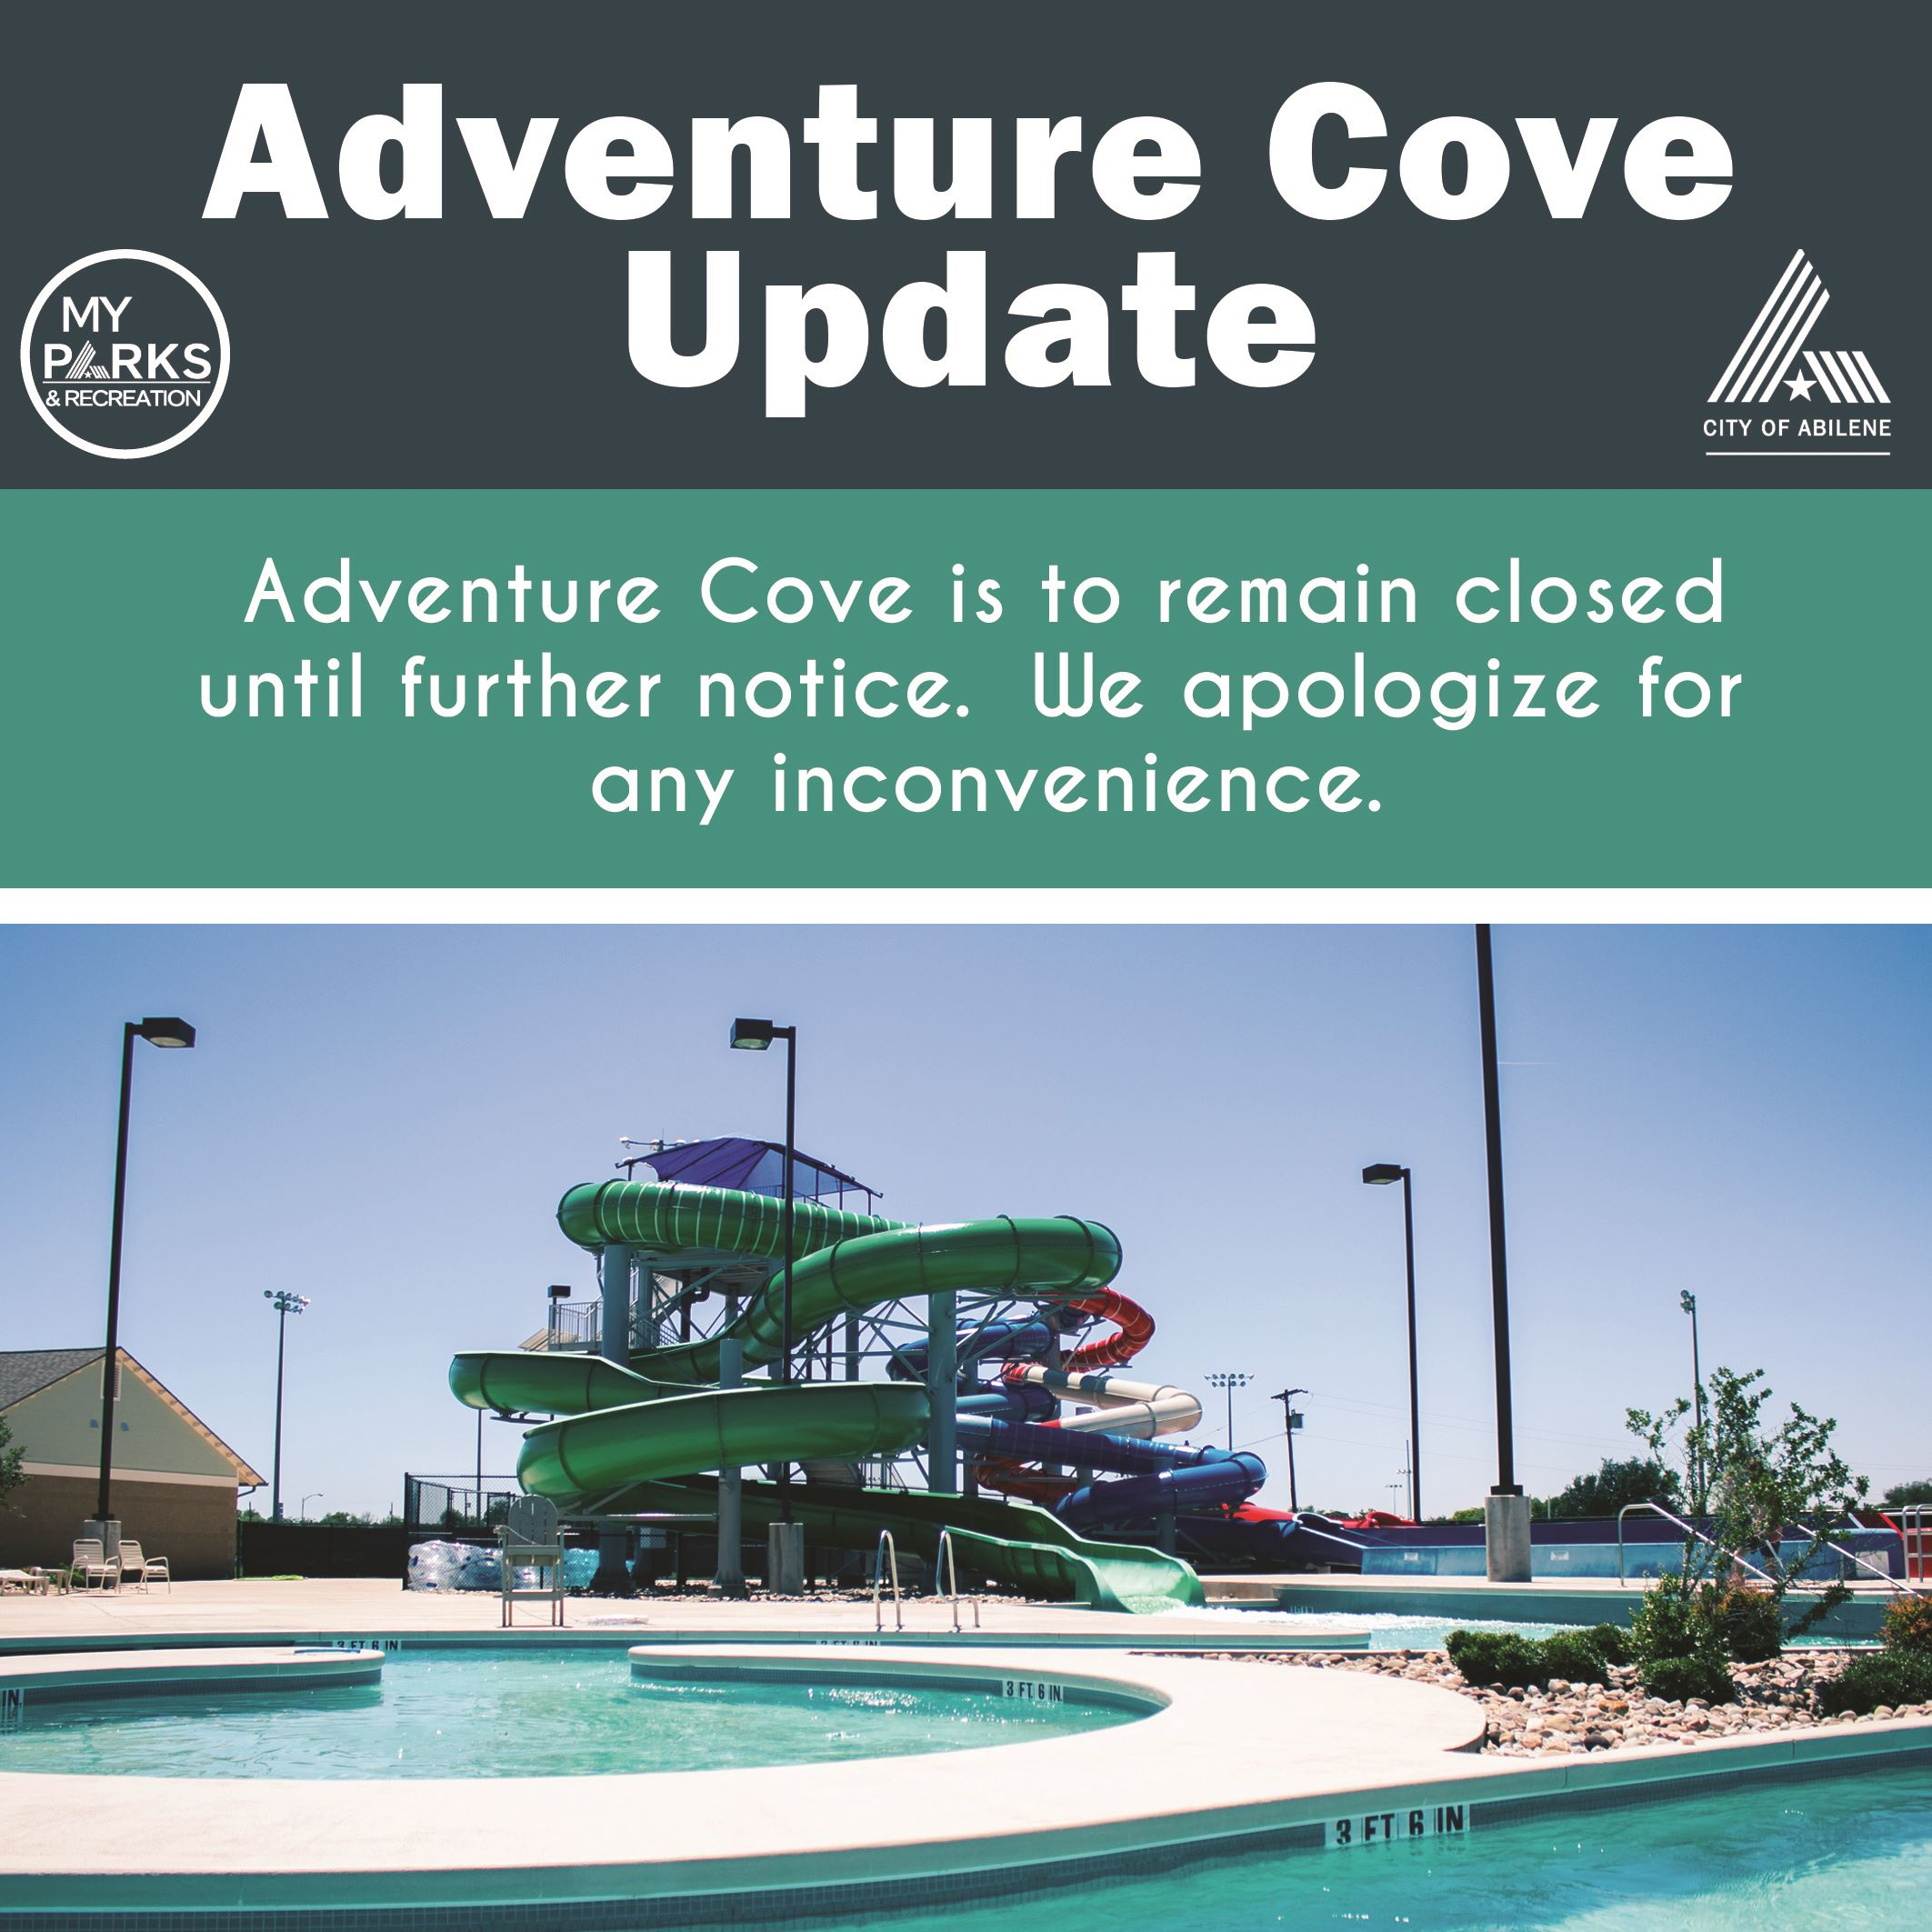 Adventure Cove Update 2020